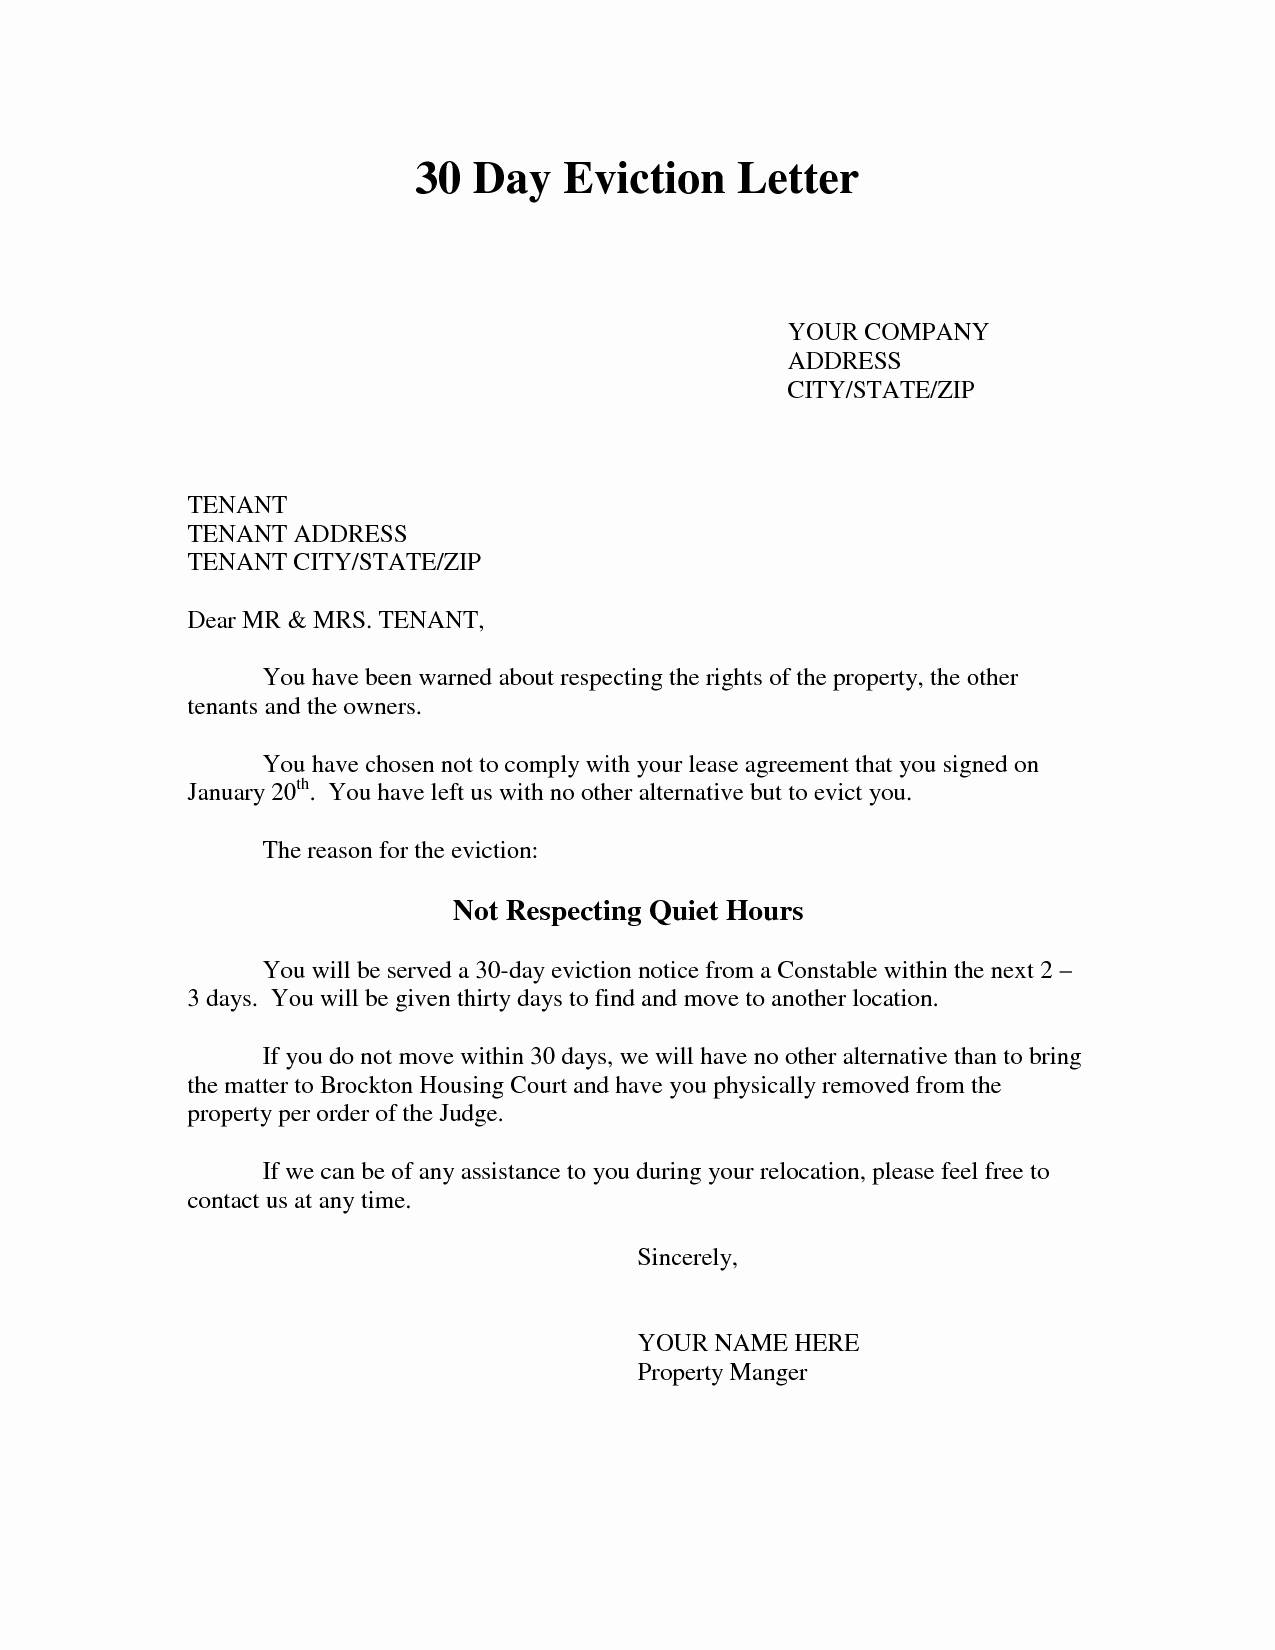 tenant eviction letter template example-Tenant Eviction Letter Template Fresh Eviction Notice Template Alberta Free Choice Image Template Design 1-i